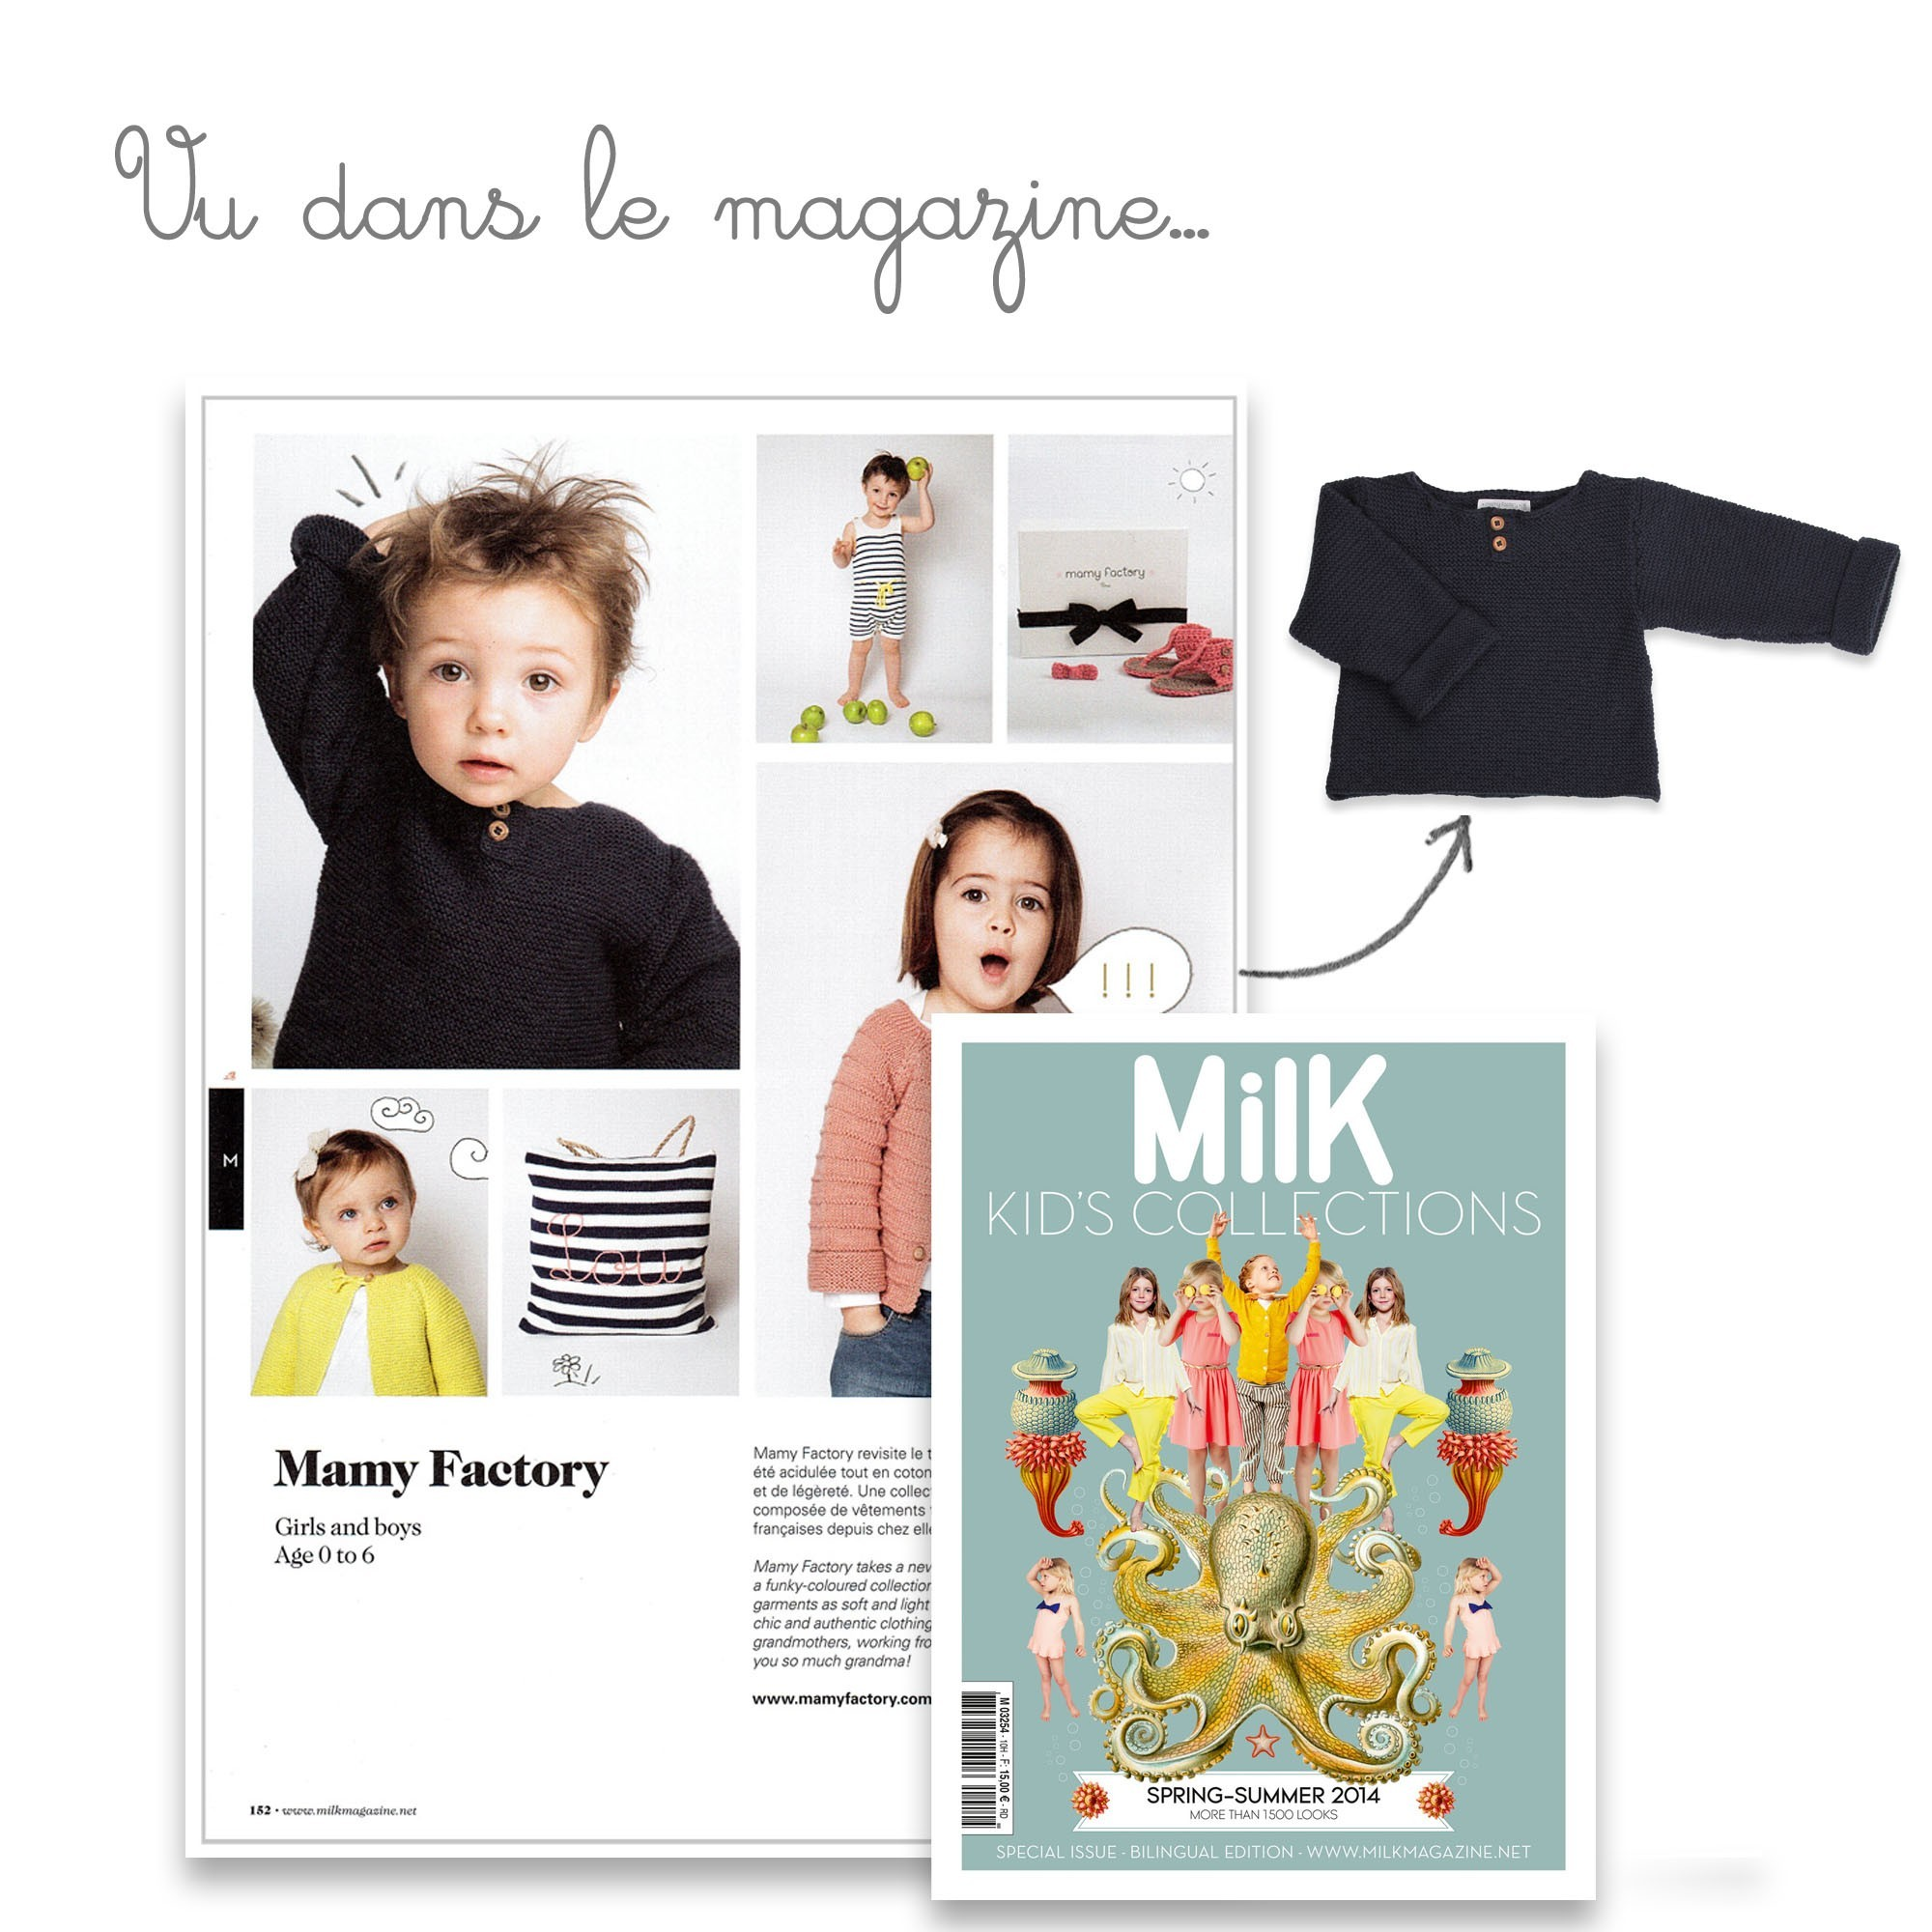 Anatole sweater seen in the magazine Milk Kids Collection